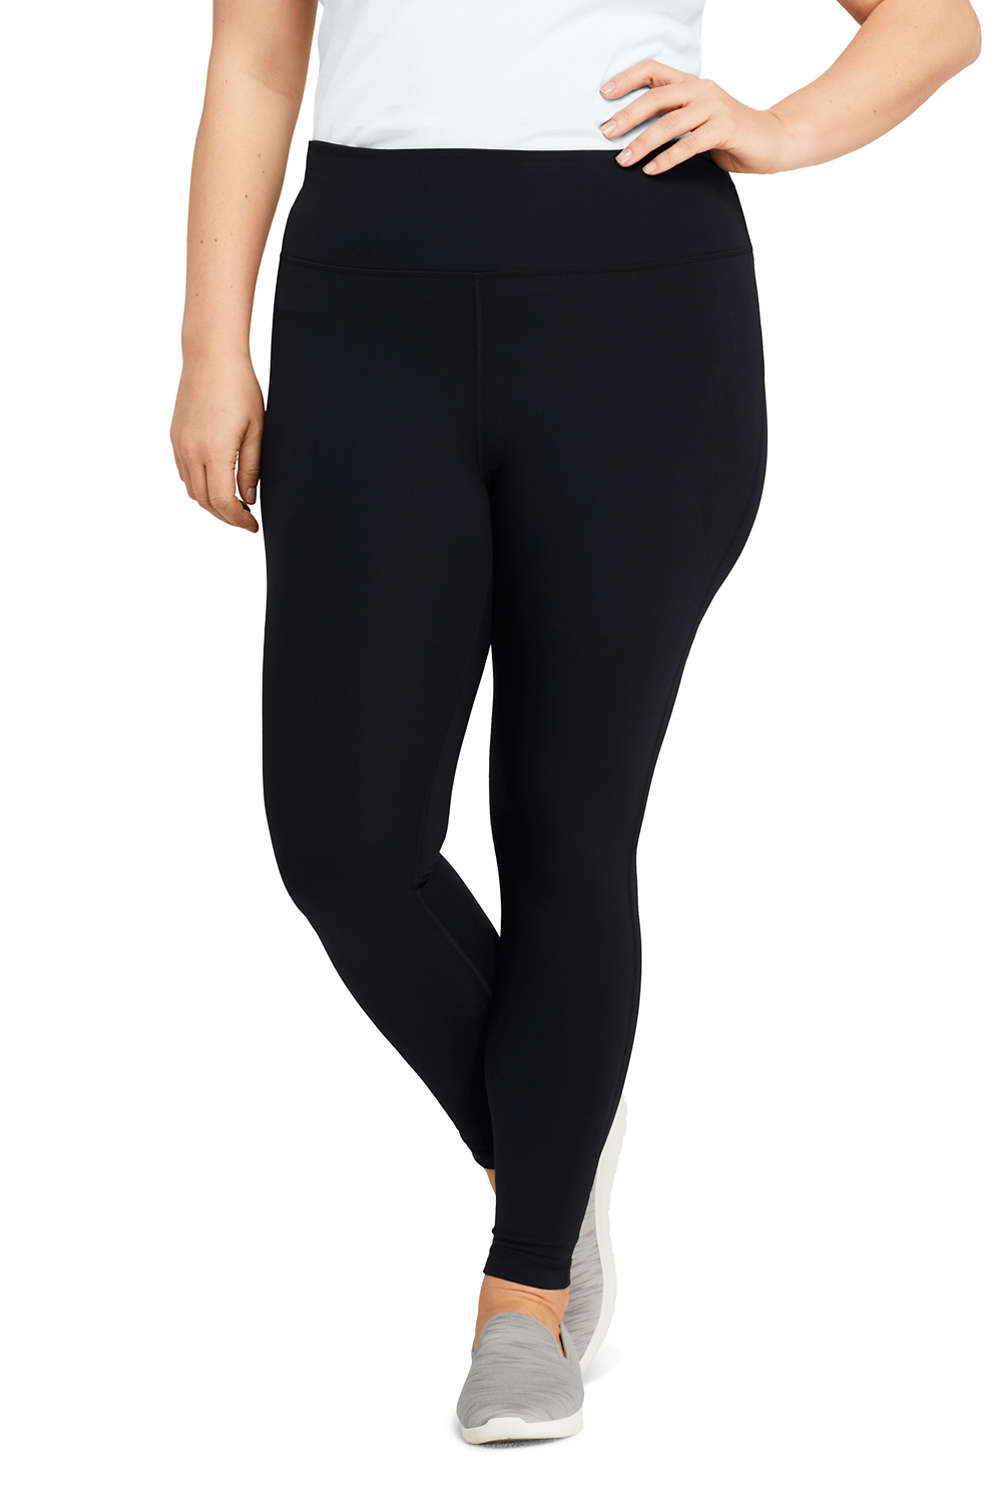 457c212a4e946c Women's Plus Size Active High Waisted Yoga Leggings 2 from Lands' End